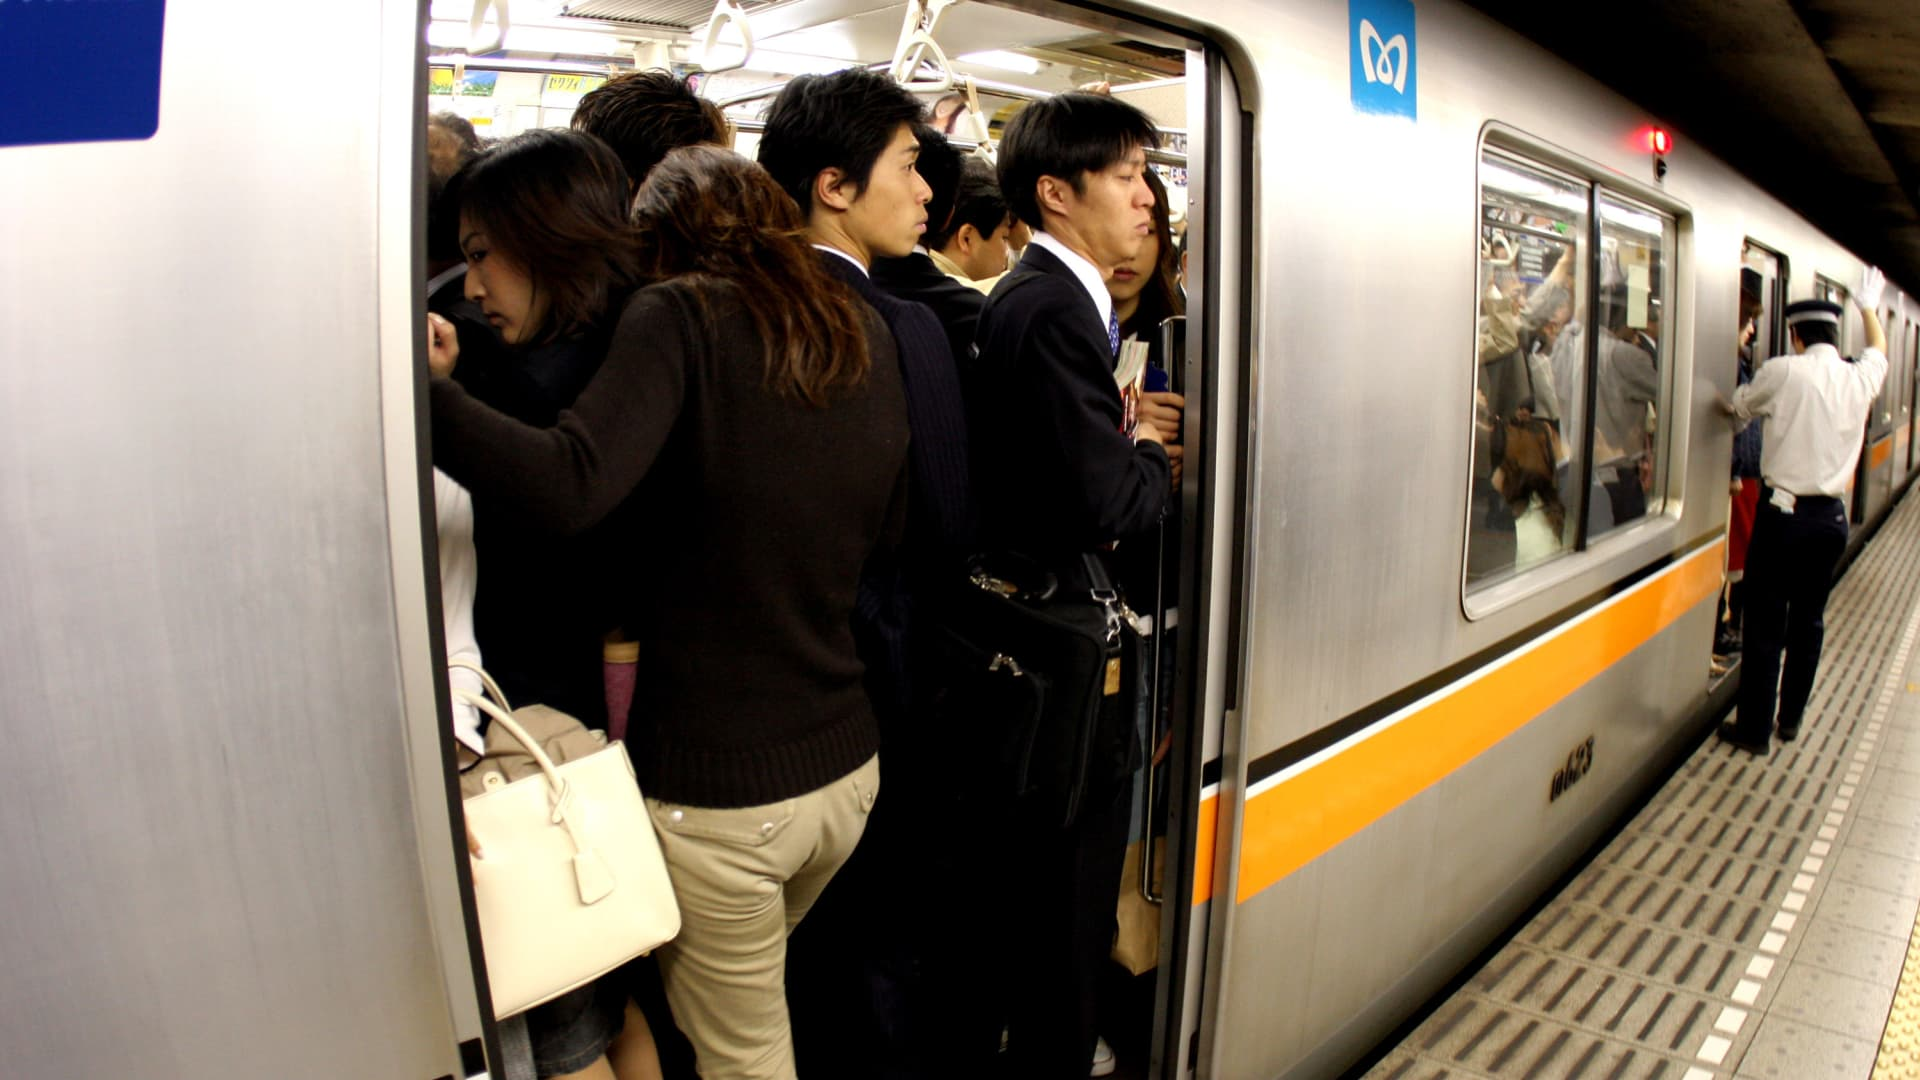 Japanese rarely talk or eat on trains, especially when they are crowded.